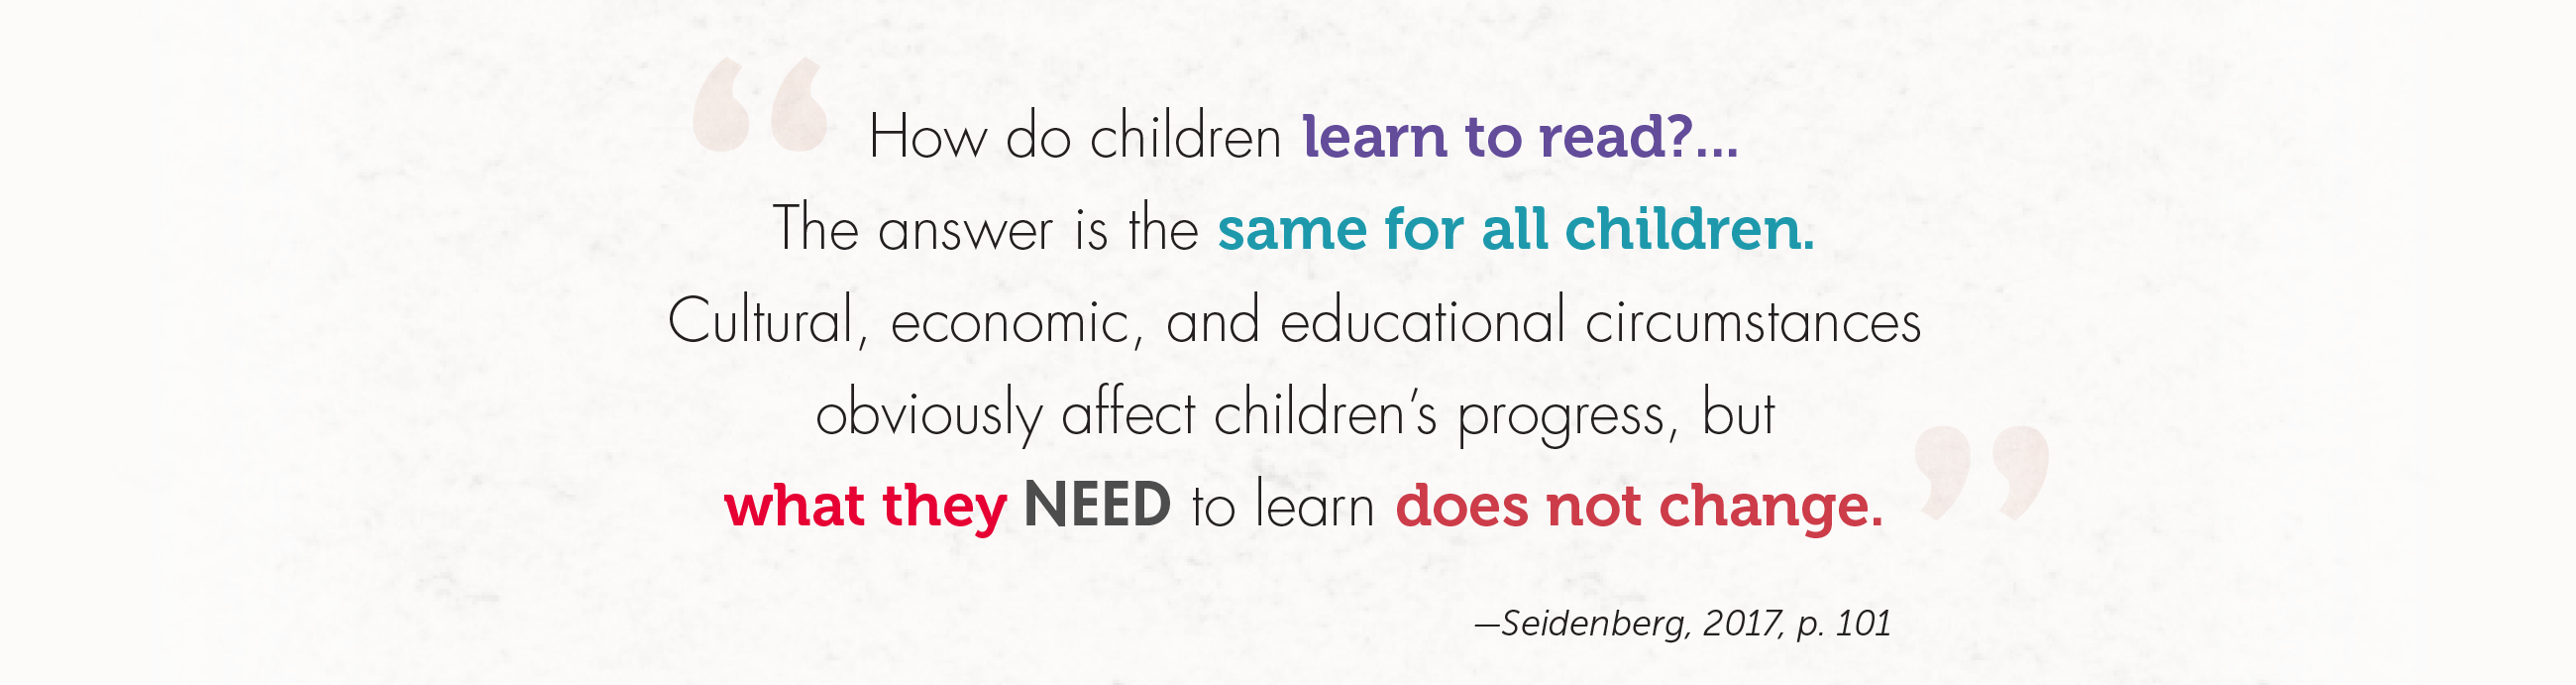 How do children learn to read?...The answer is the same for all children. Cultural, economic, and educational circumstances obviously affect children's progress, but what they need to learn does not change. -Seidenberg, 2017, p. 101